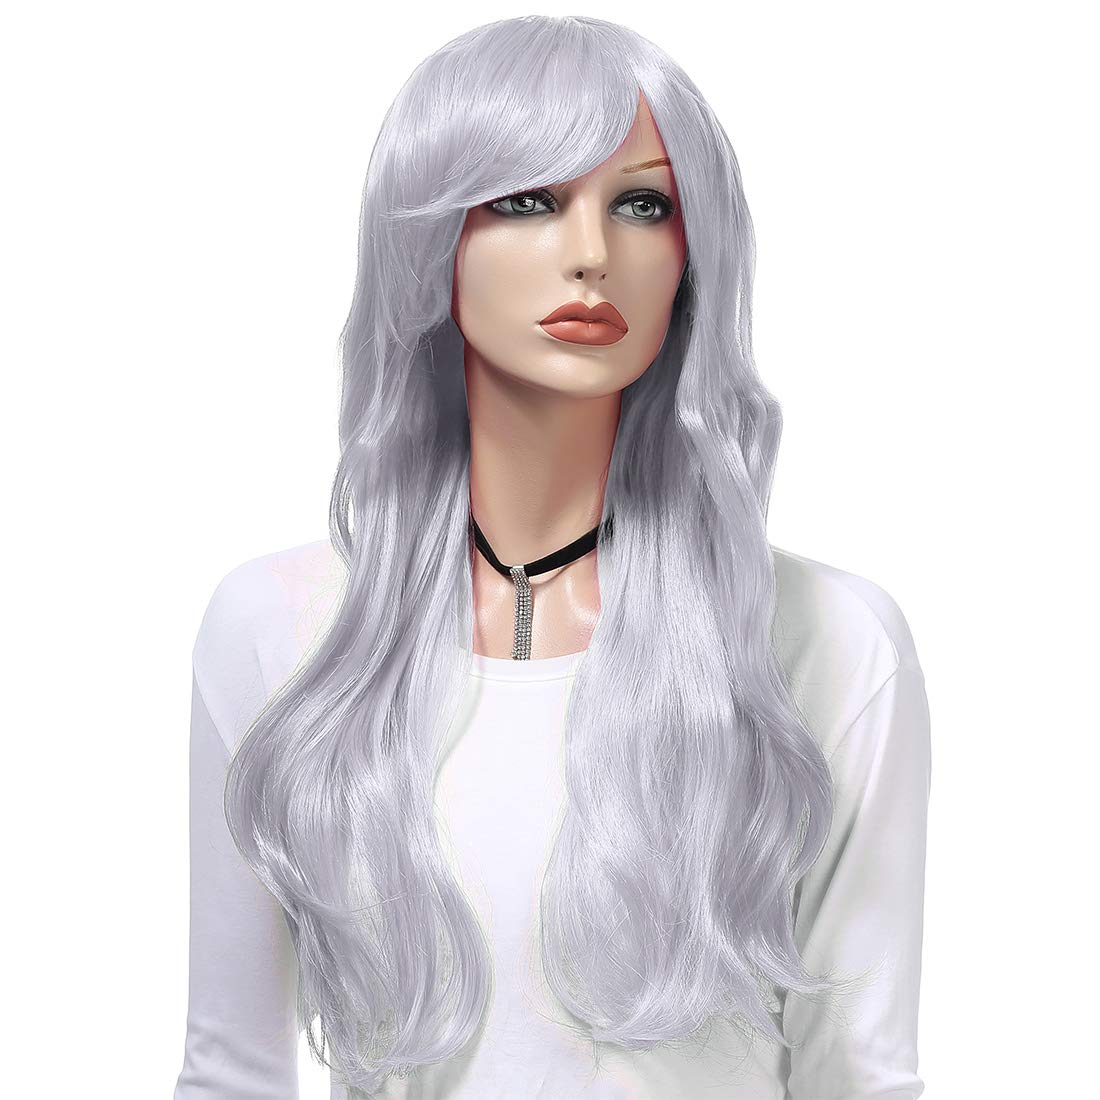 Wigood 28 Inch Black Wig Long Curly Hair with Air Bangs Free Wig Cap Cosplay Halloween Wigs for Black Women